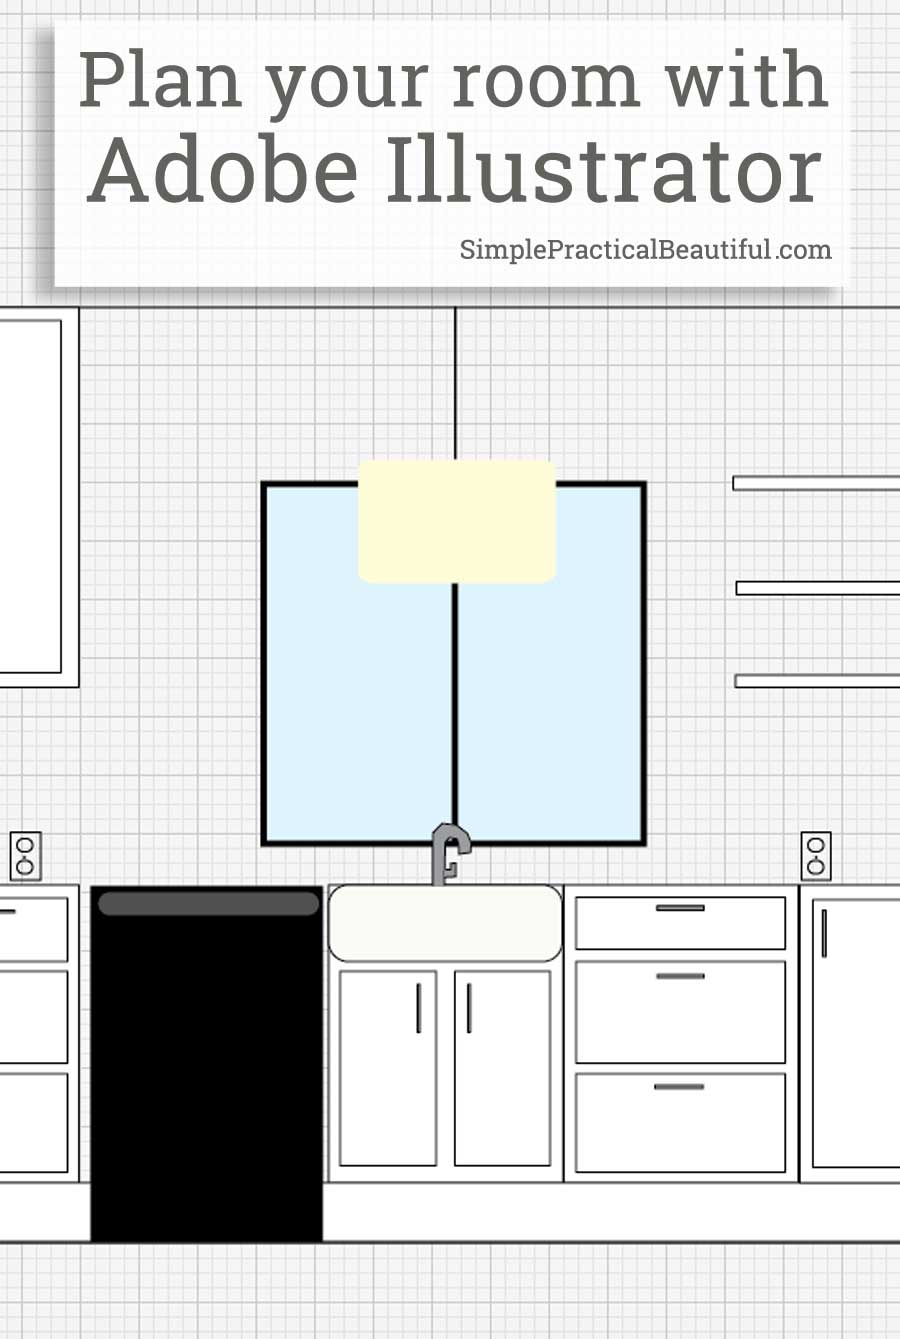 Use Adobe Illustrator To Plan A Room Layout Simple Practical